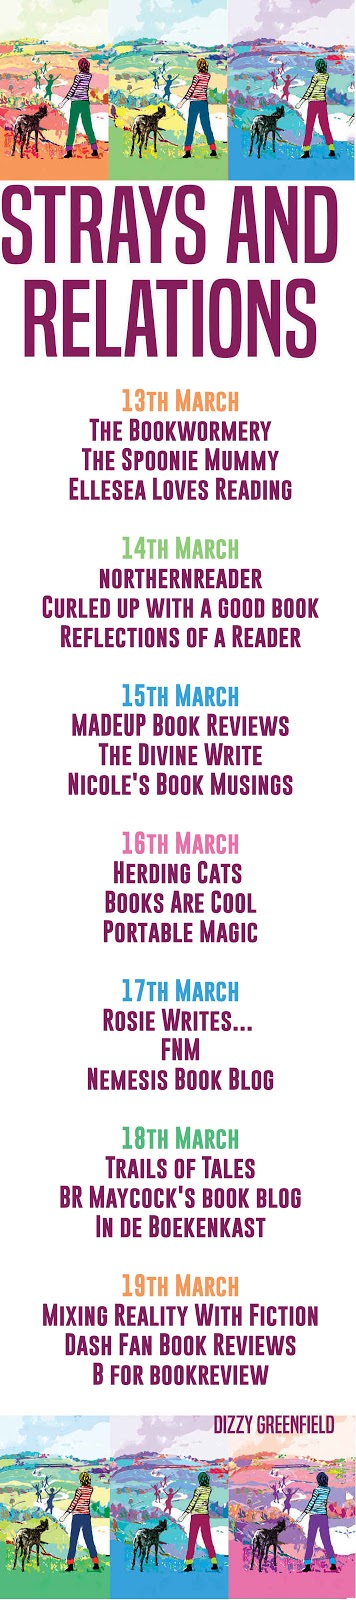 Reflections of a Reader